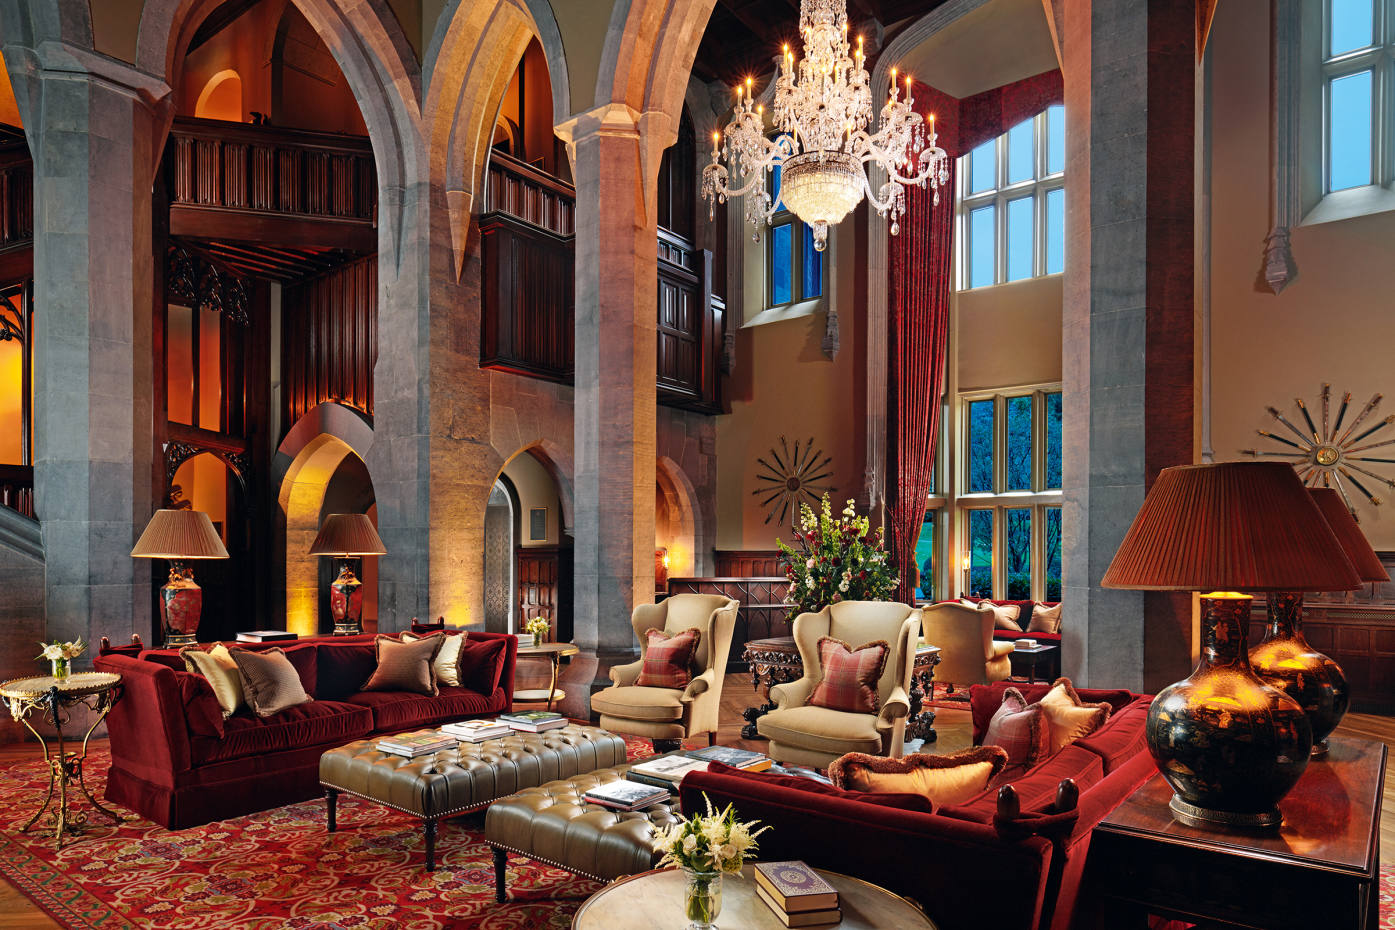 The Great Hall atAdareManor in CountyLimerick, whichabounds with reproduction furniture